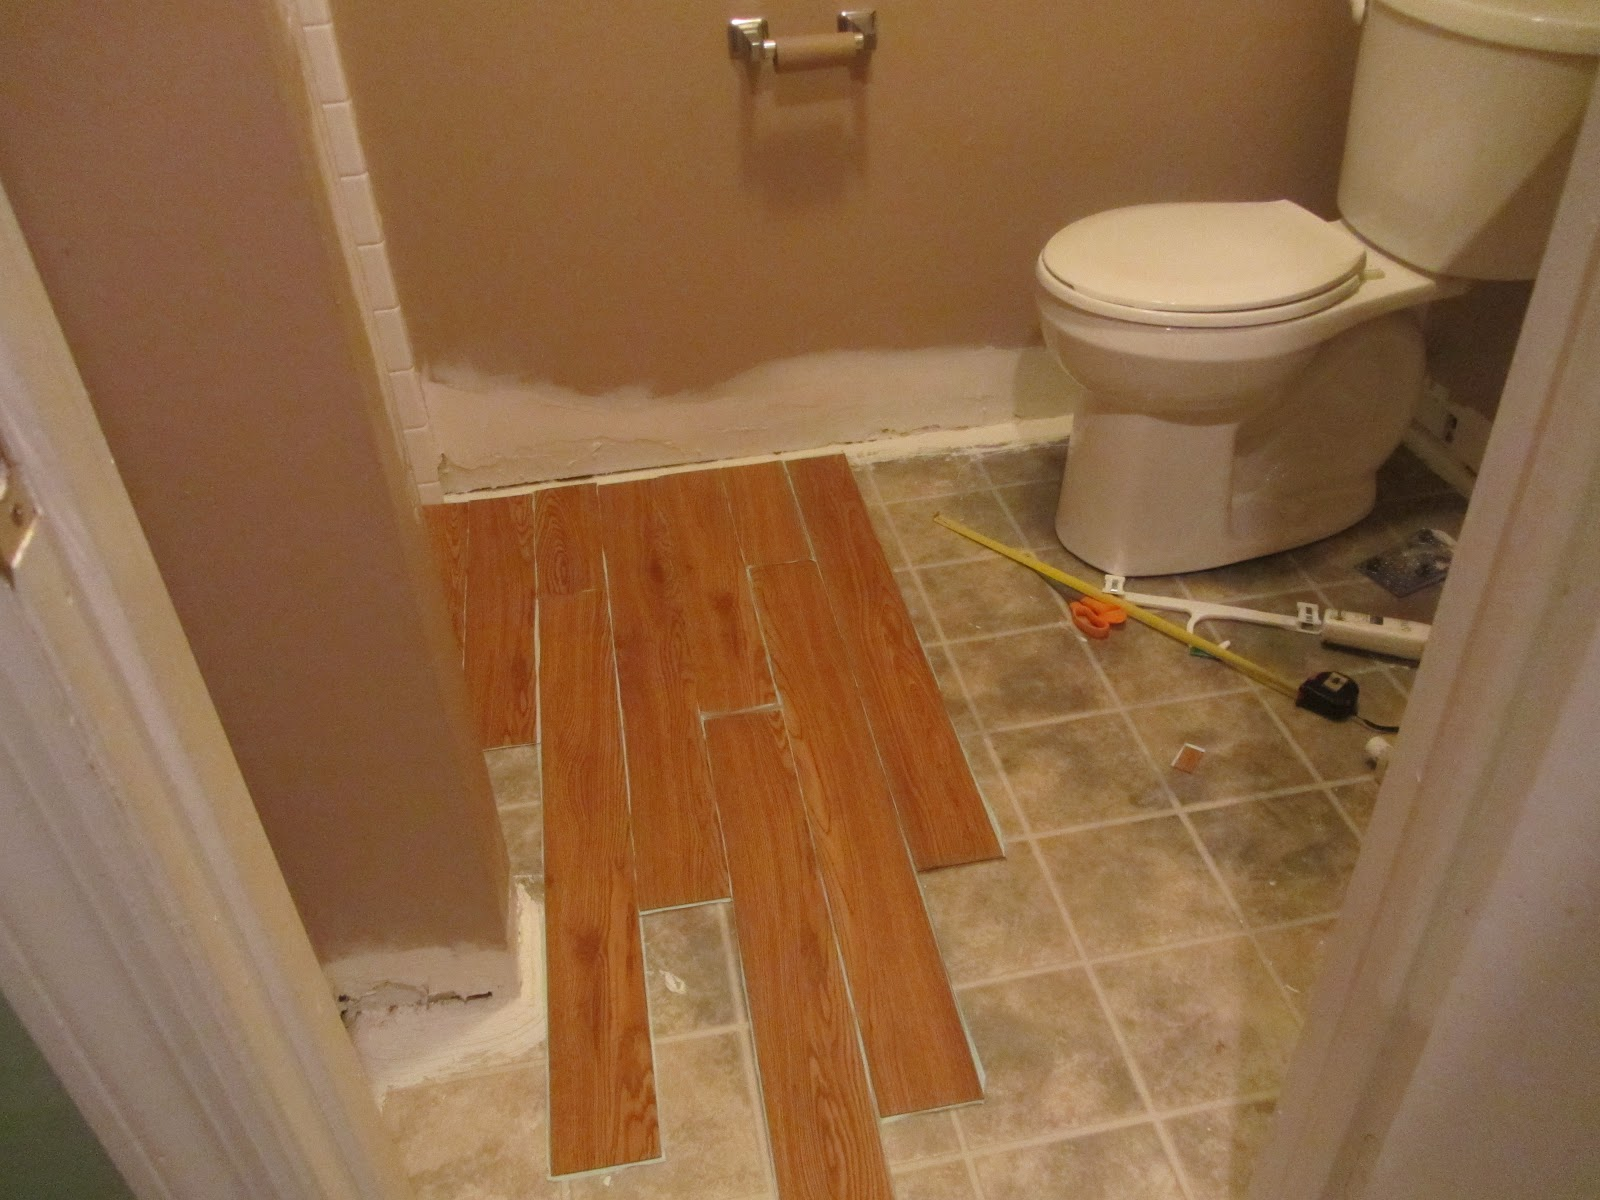 Vinyl Plank Floor In Bathroom Hd Image